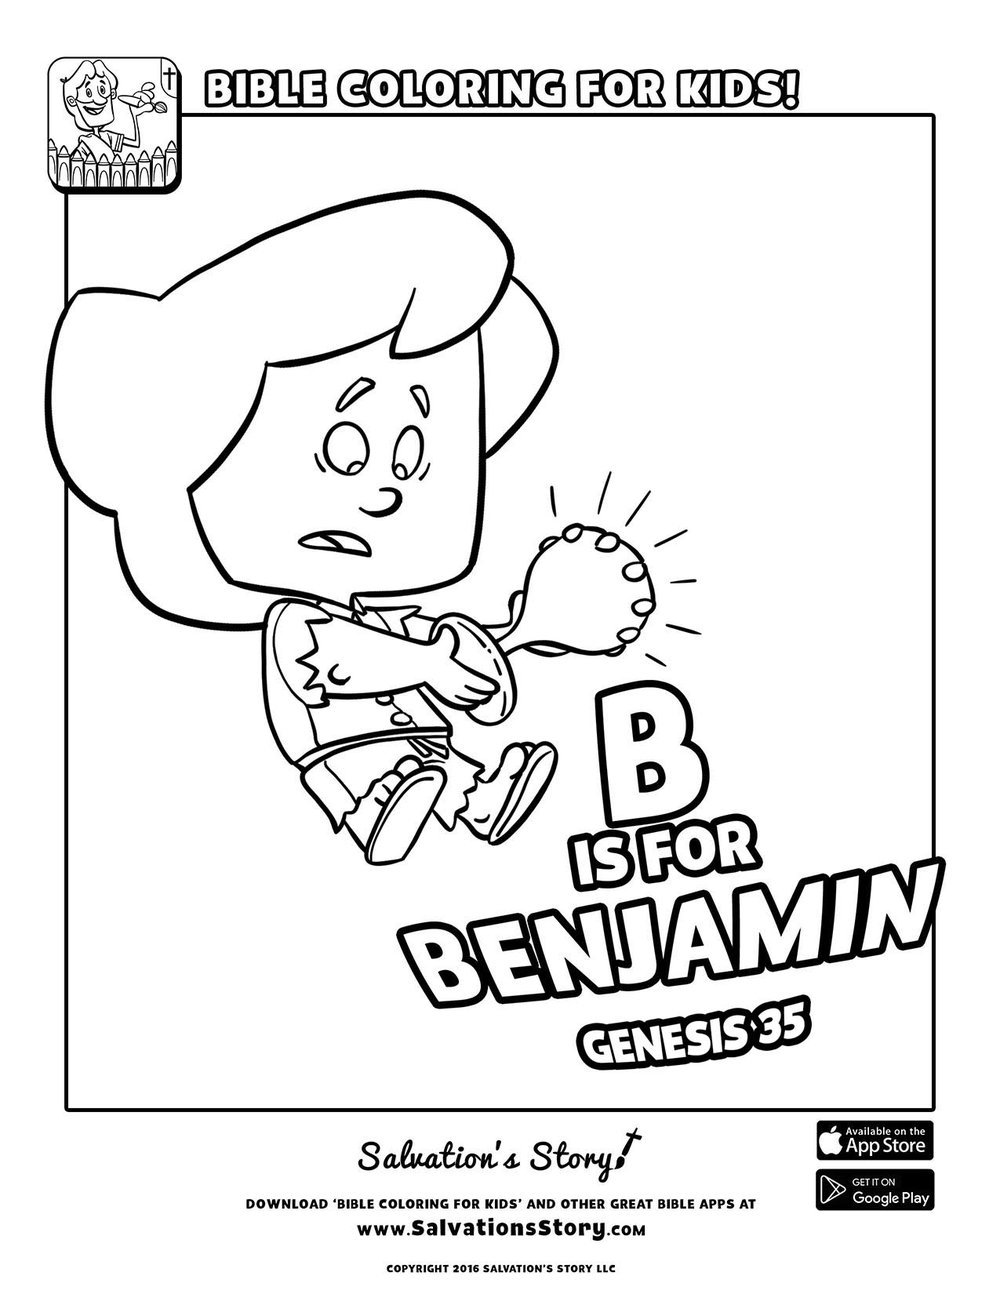 B is for Benjamin.jpg